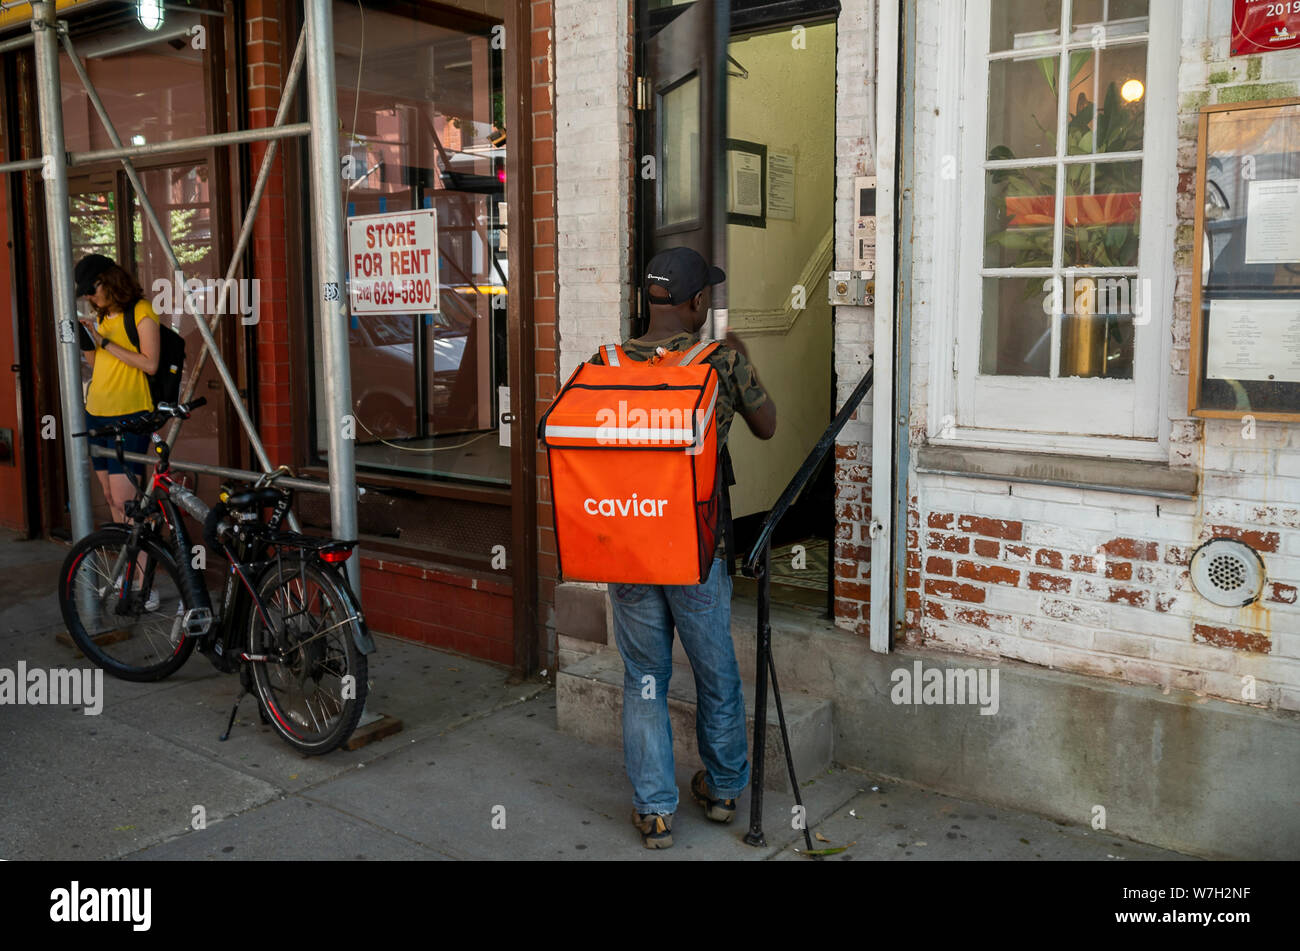 A Caviar delivery worker outside a building in New York on Saturday, August 3, 2019. Square has sold their food delivery service Caviar ot DoorDash in a $410 million deal. (© Richard B. Levine) Stock Photo